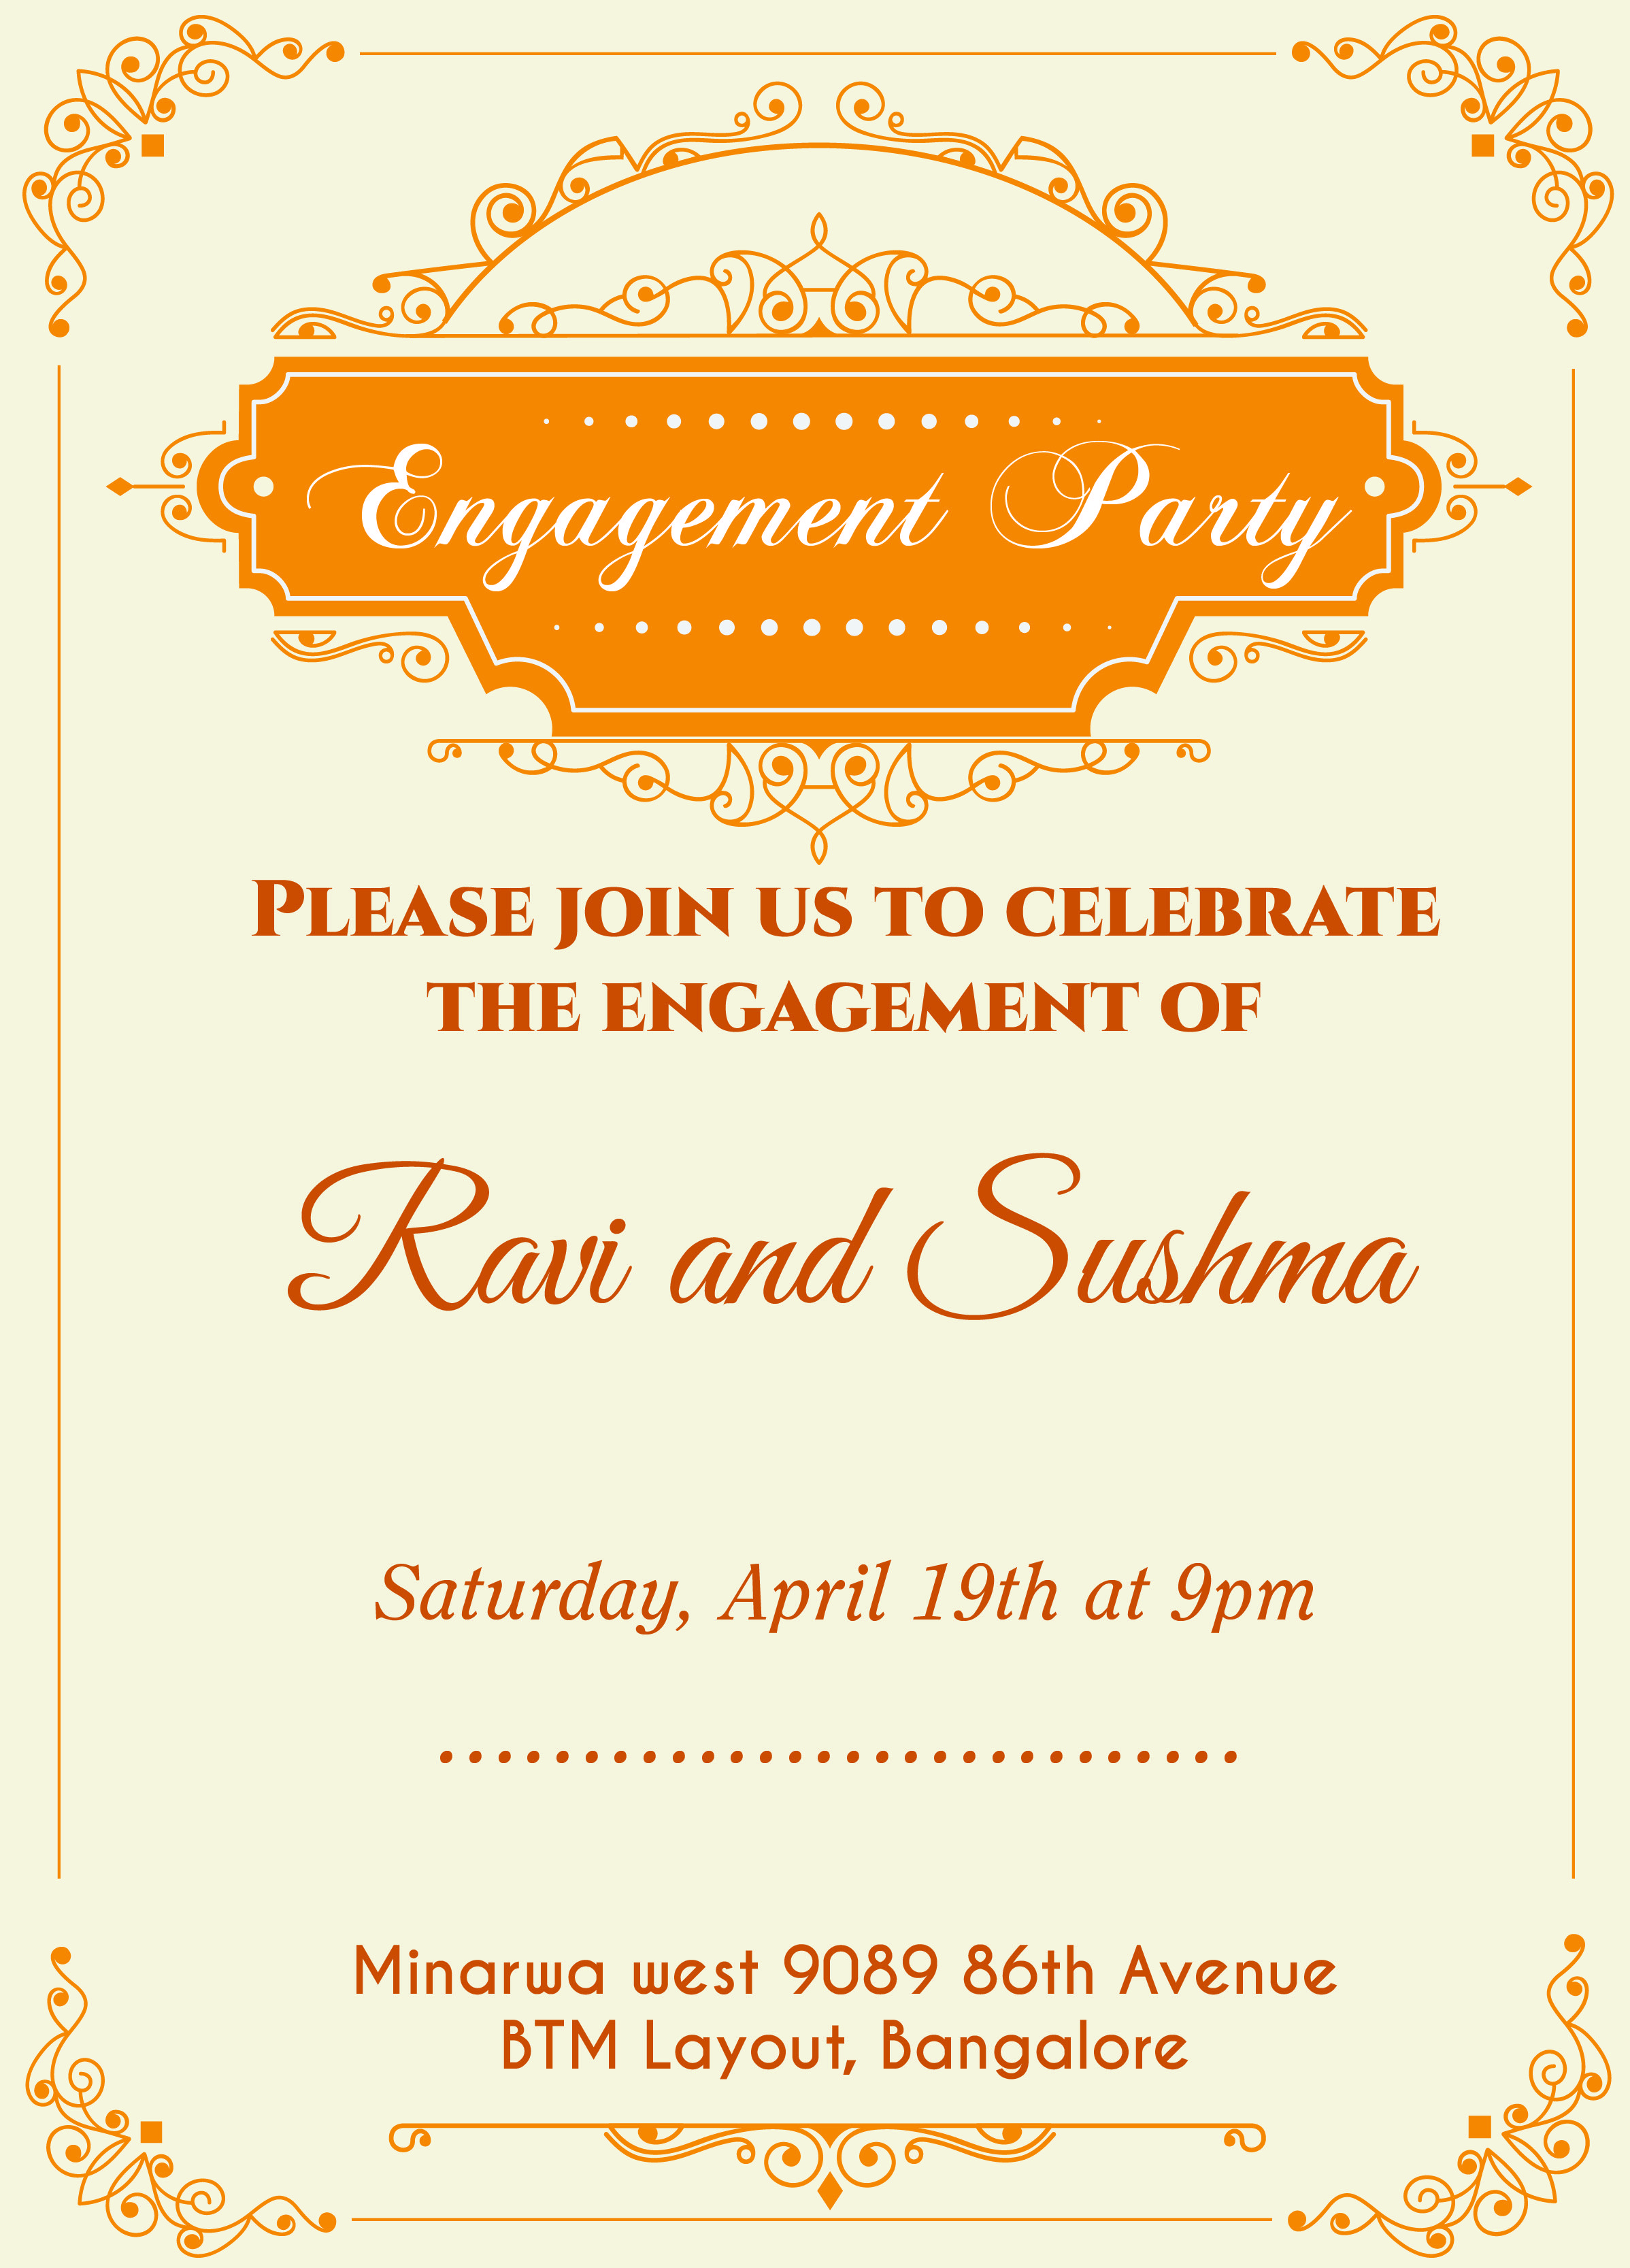 Indian engagement invitation card with wordings check it out indian engagement invitation card with wordings check it out stopboris Choice Image